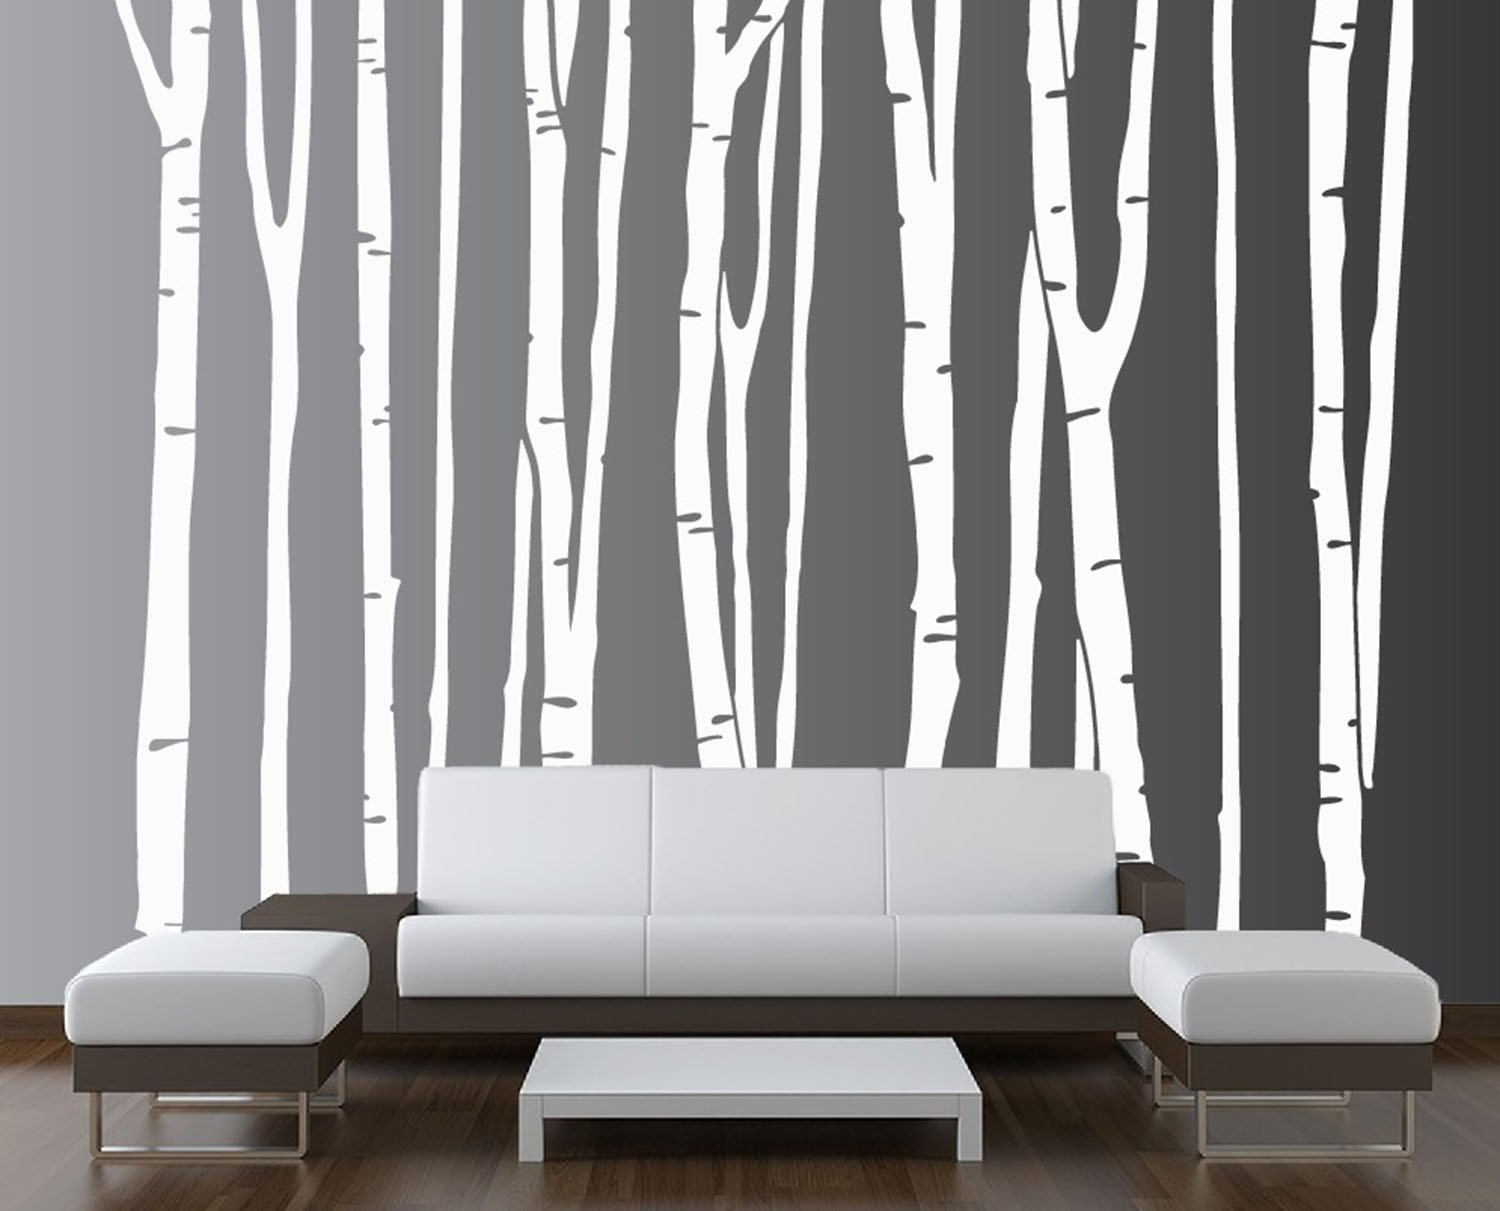 Large wall birch tree decal forest kids vinyl sticker removable 9 large wall birch tree decal forest kids vinyl sticker removable 9 trees 84 7 feet tall 1109 childrens wall decor amazon amipublicfo Choice Image